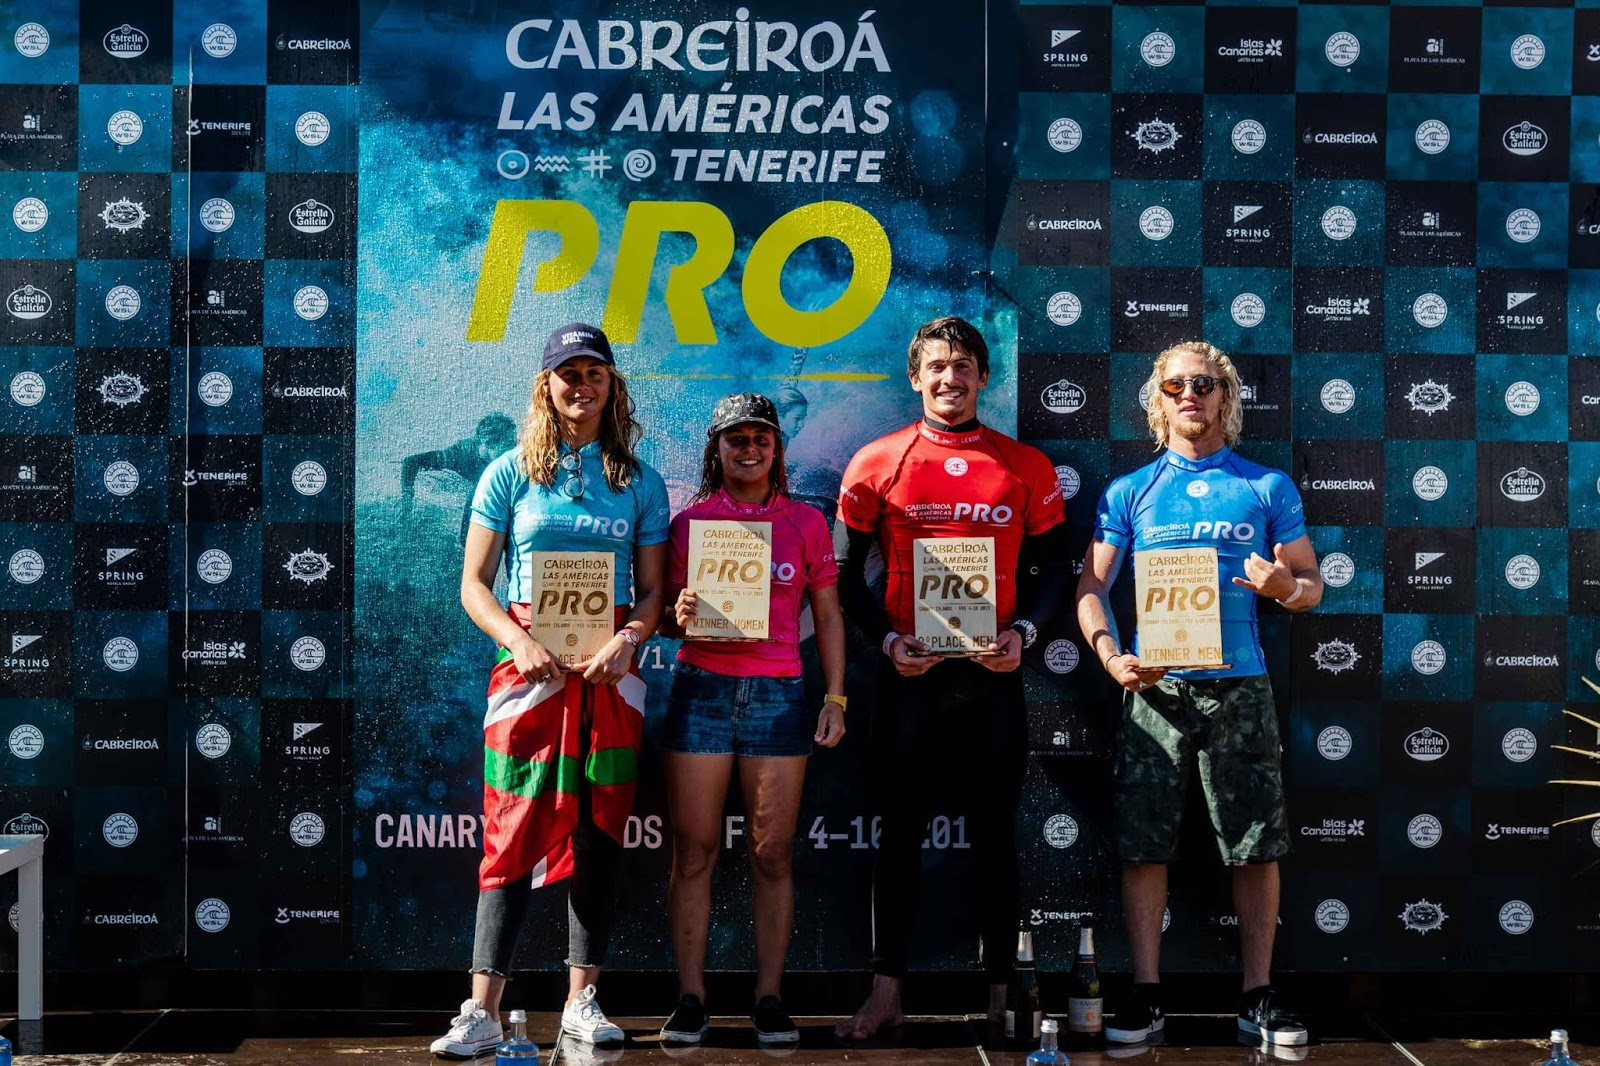 2019 Cabreiroá Las Americas Pro Tenerife Highlights Champions Crowned in Tenerife